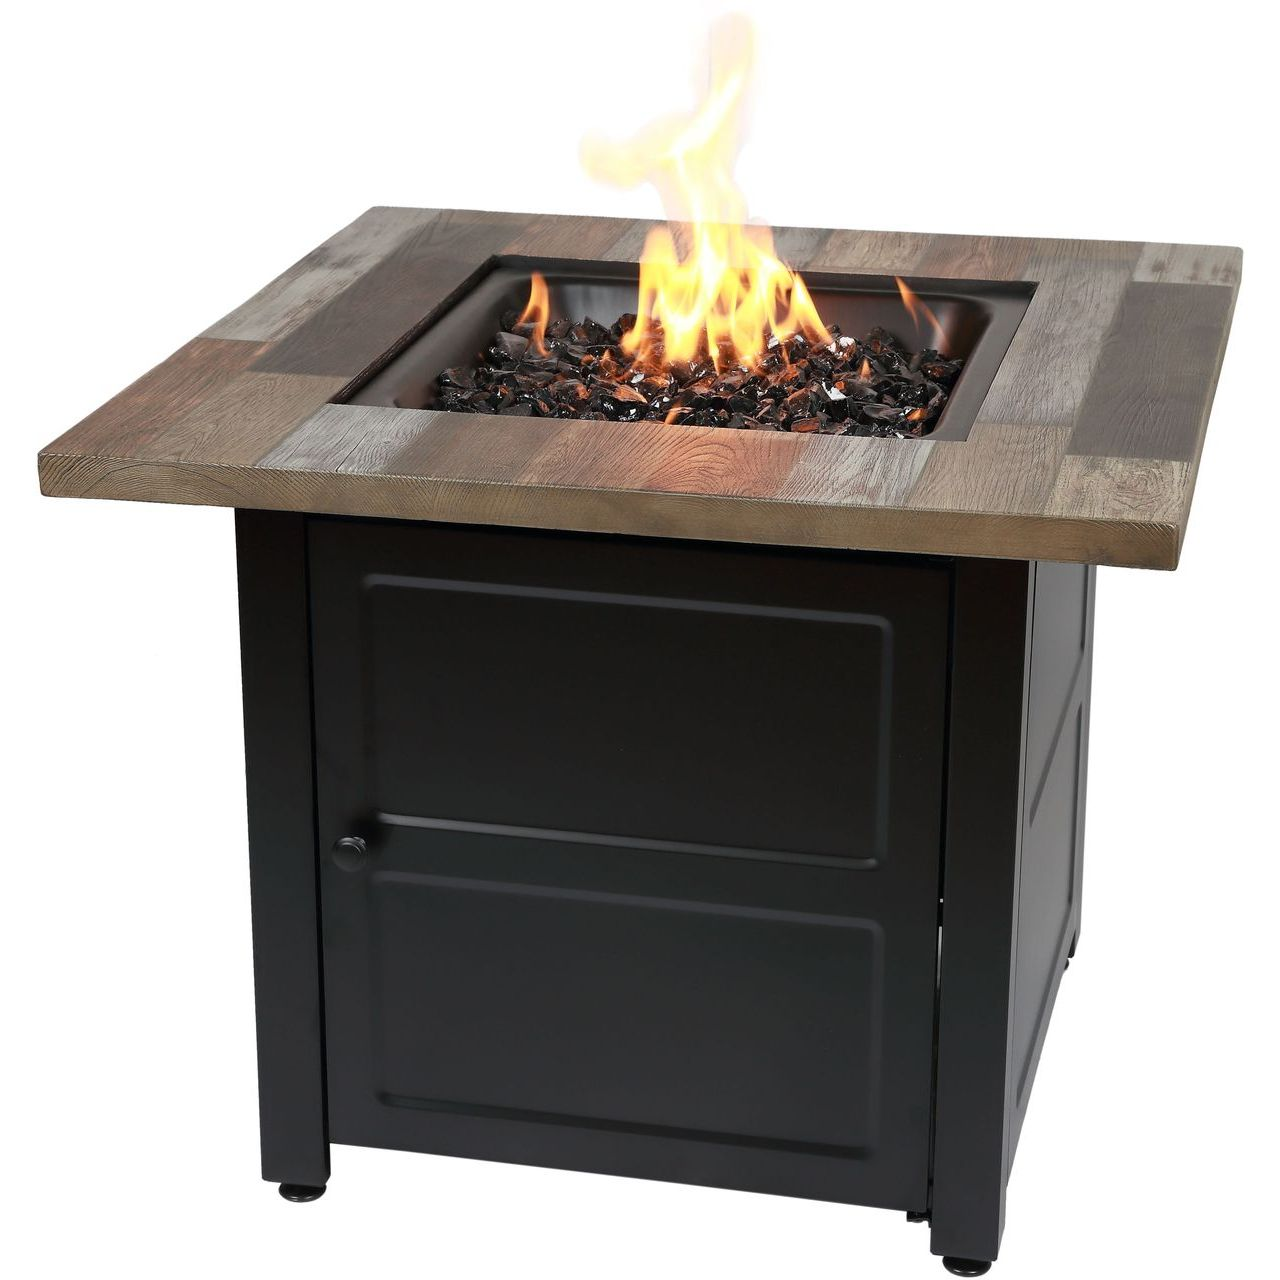 "Endless Summer Cayden 30"" Gas Fire Table With Printed Resin Mantel"